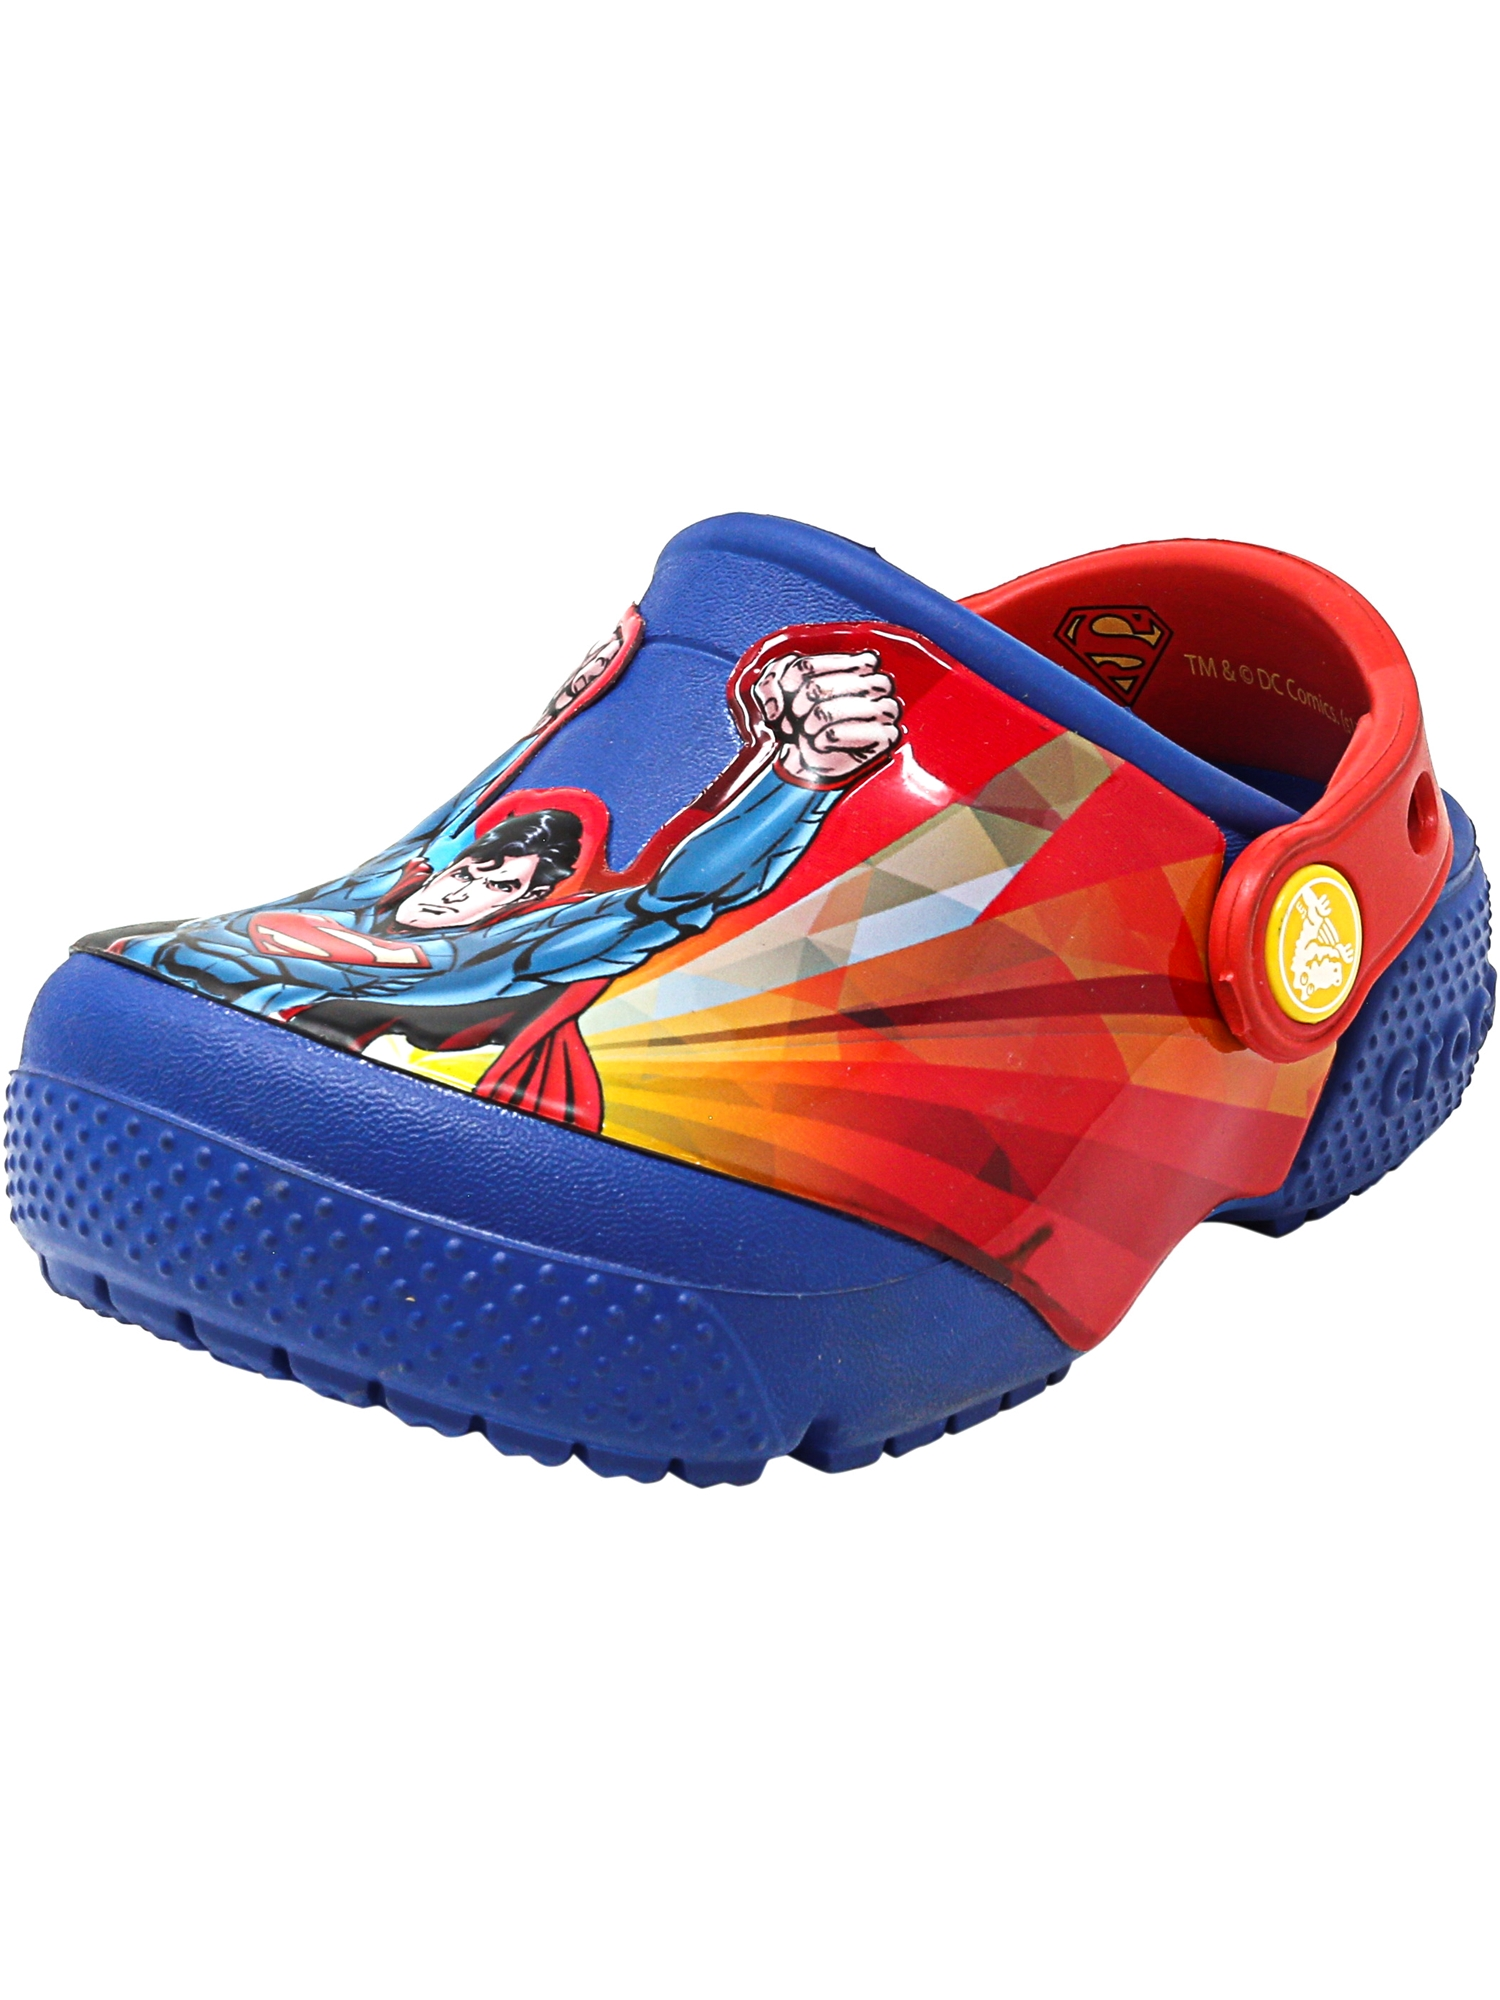 Crocs Crocsfunlab Superman Clog Blue Jean Ankle-High Clogs 3M by Crocs